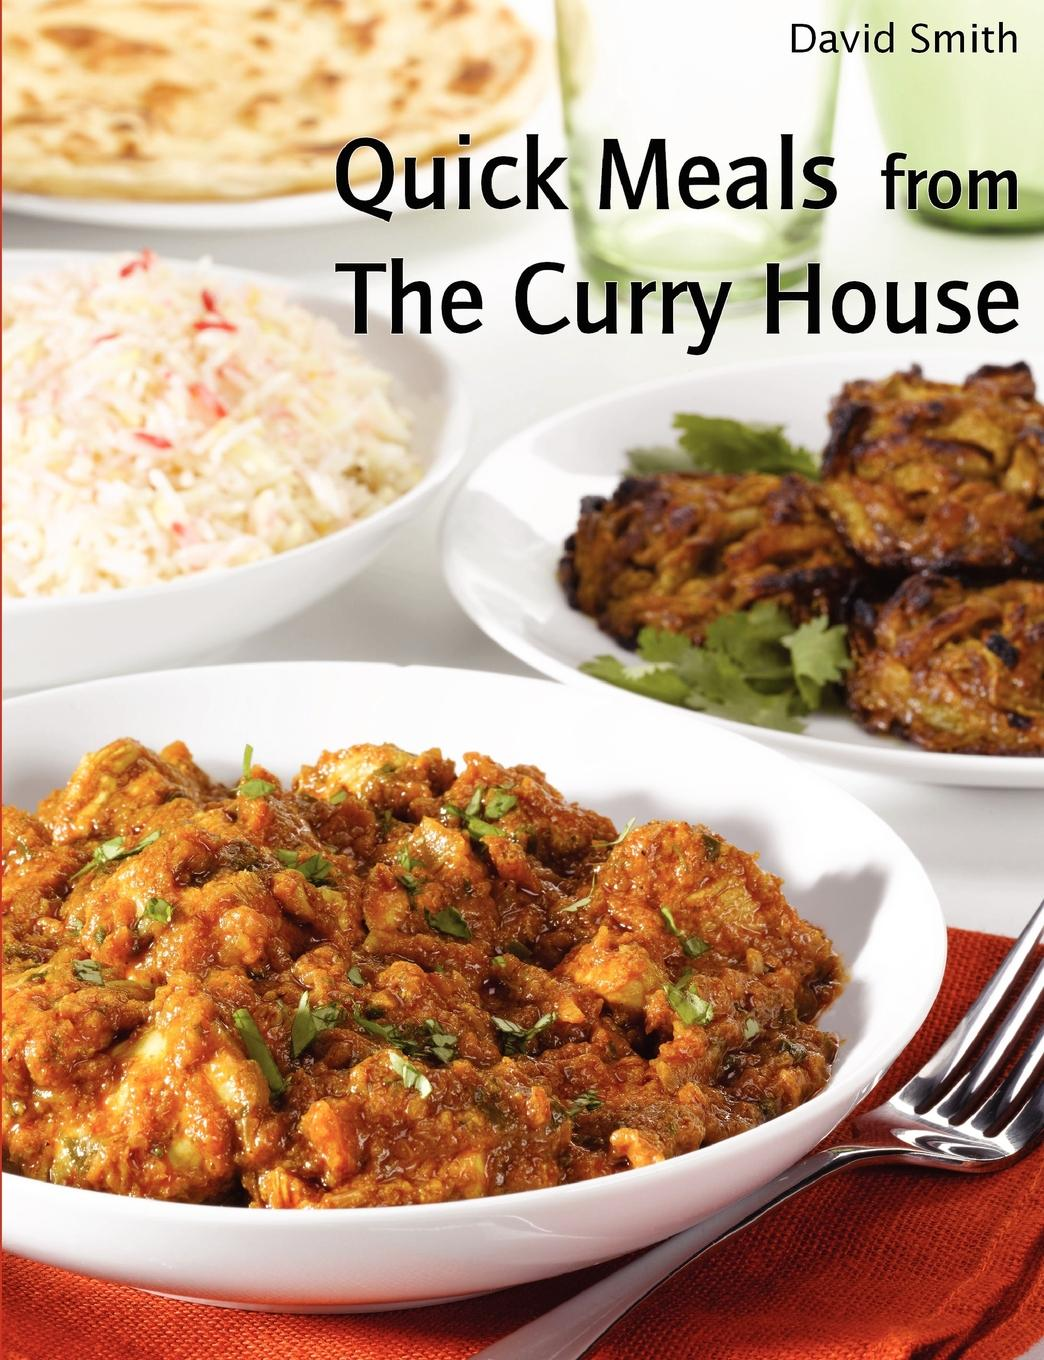 купить David Smith Quick Meals from The Curry House онлайн